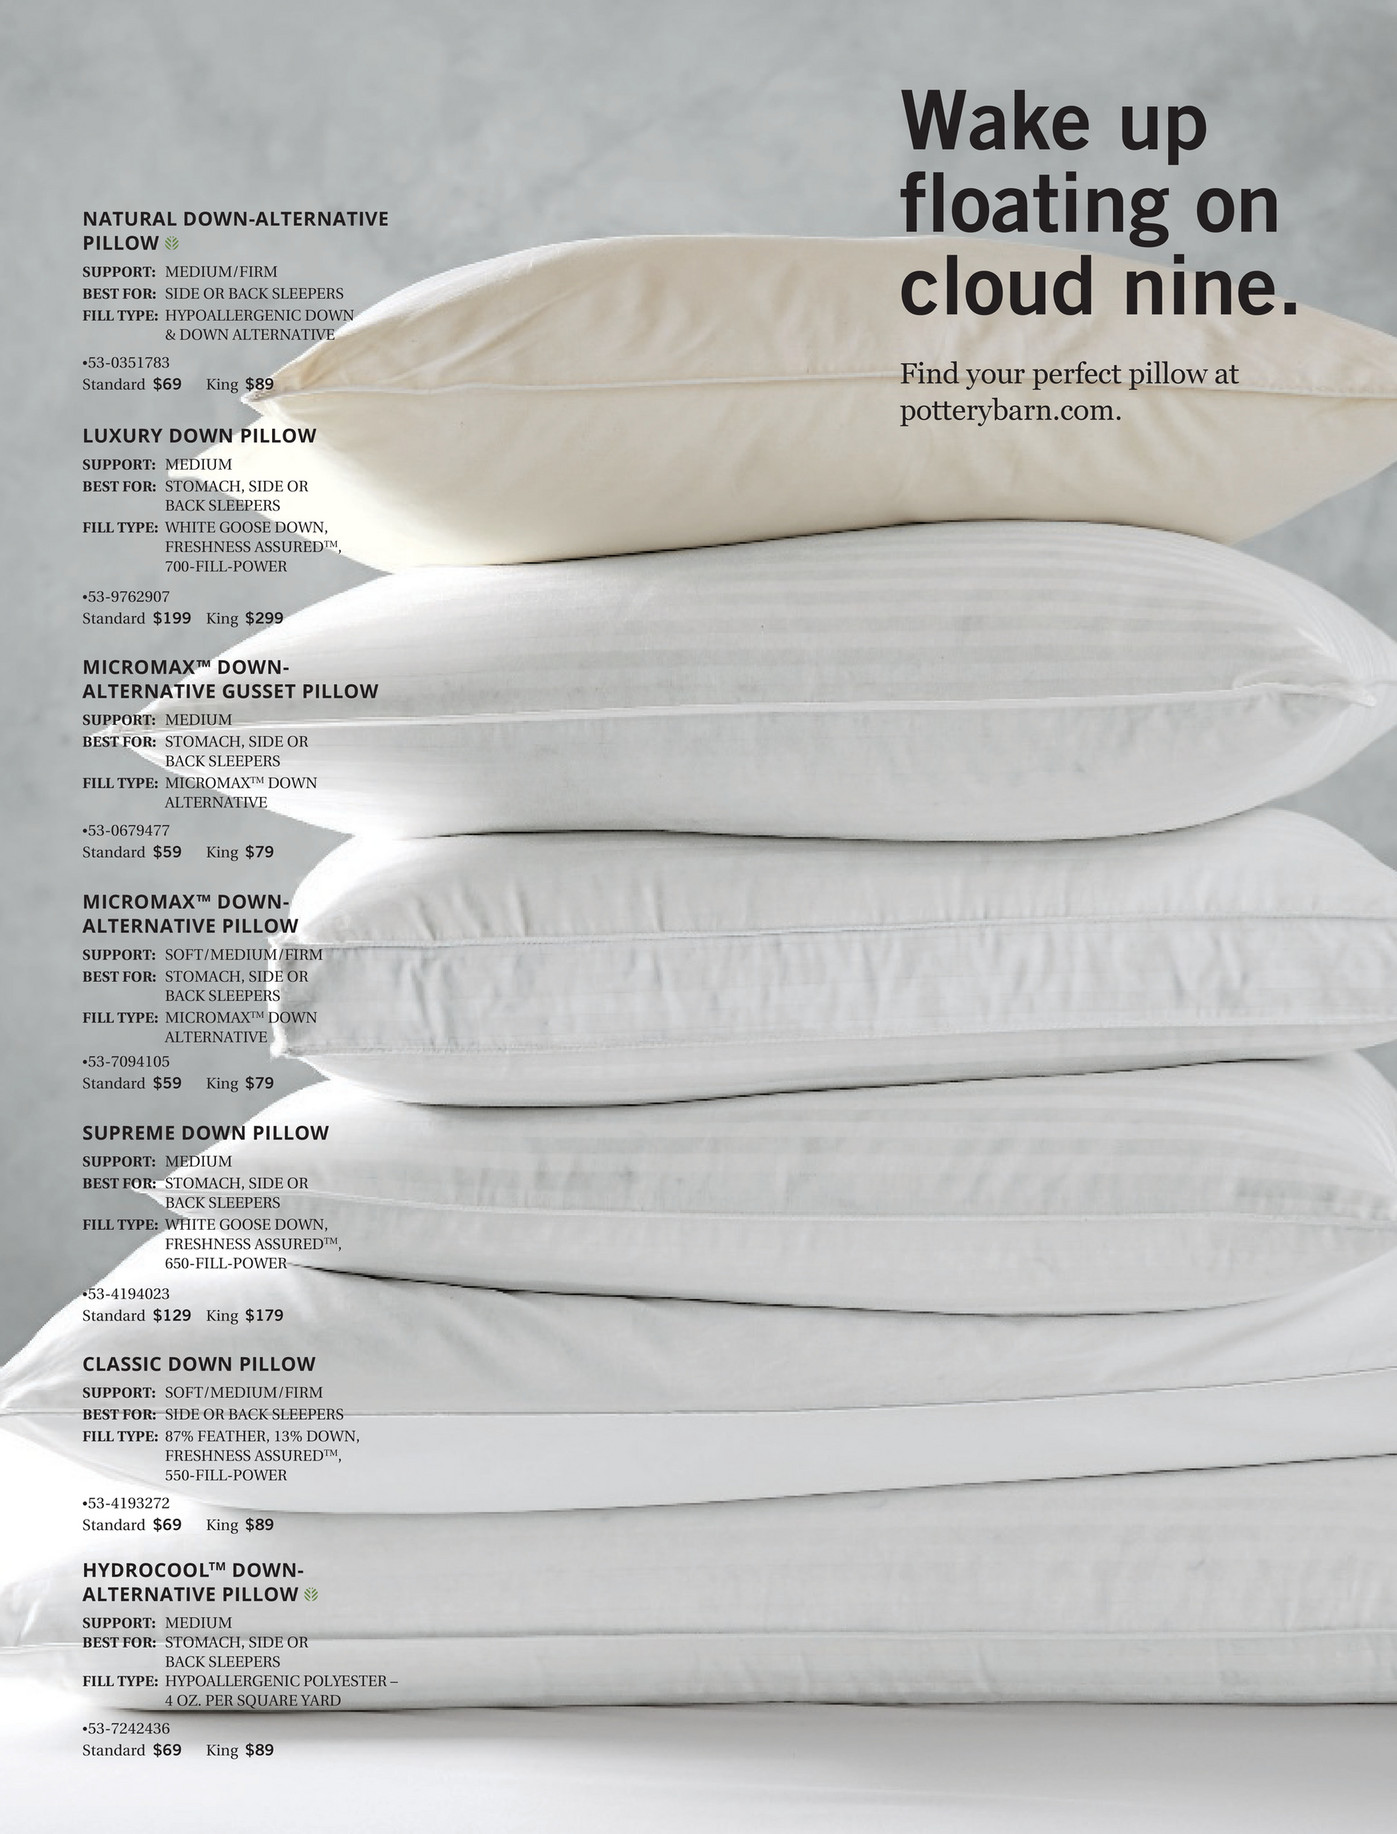 Floating Cloud Bed Pottery Barn Bed Bath Spring 2017 D1 Page 34 35